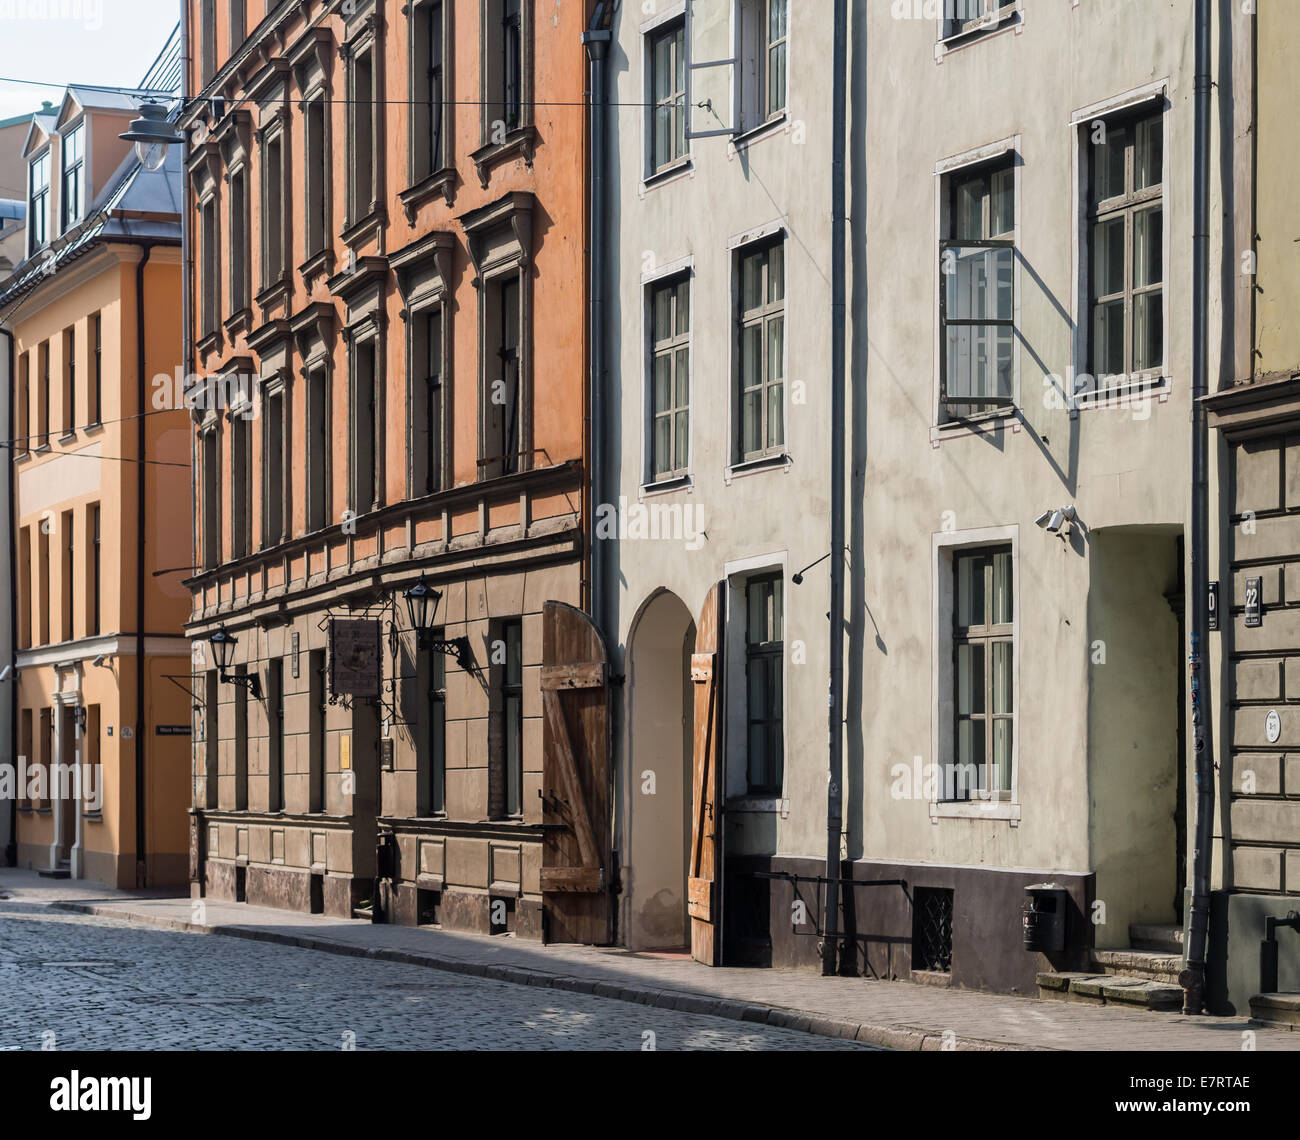 Architecture  on Pils street in the Old Town of Riga, Latvia. - Stock Image